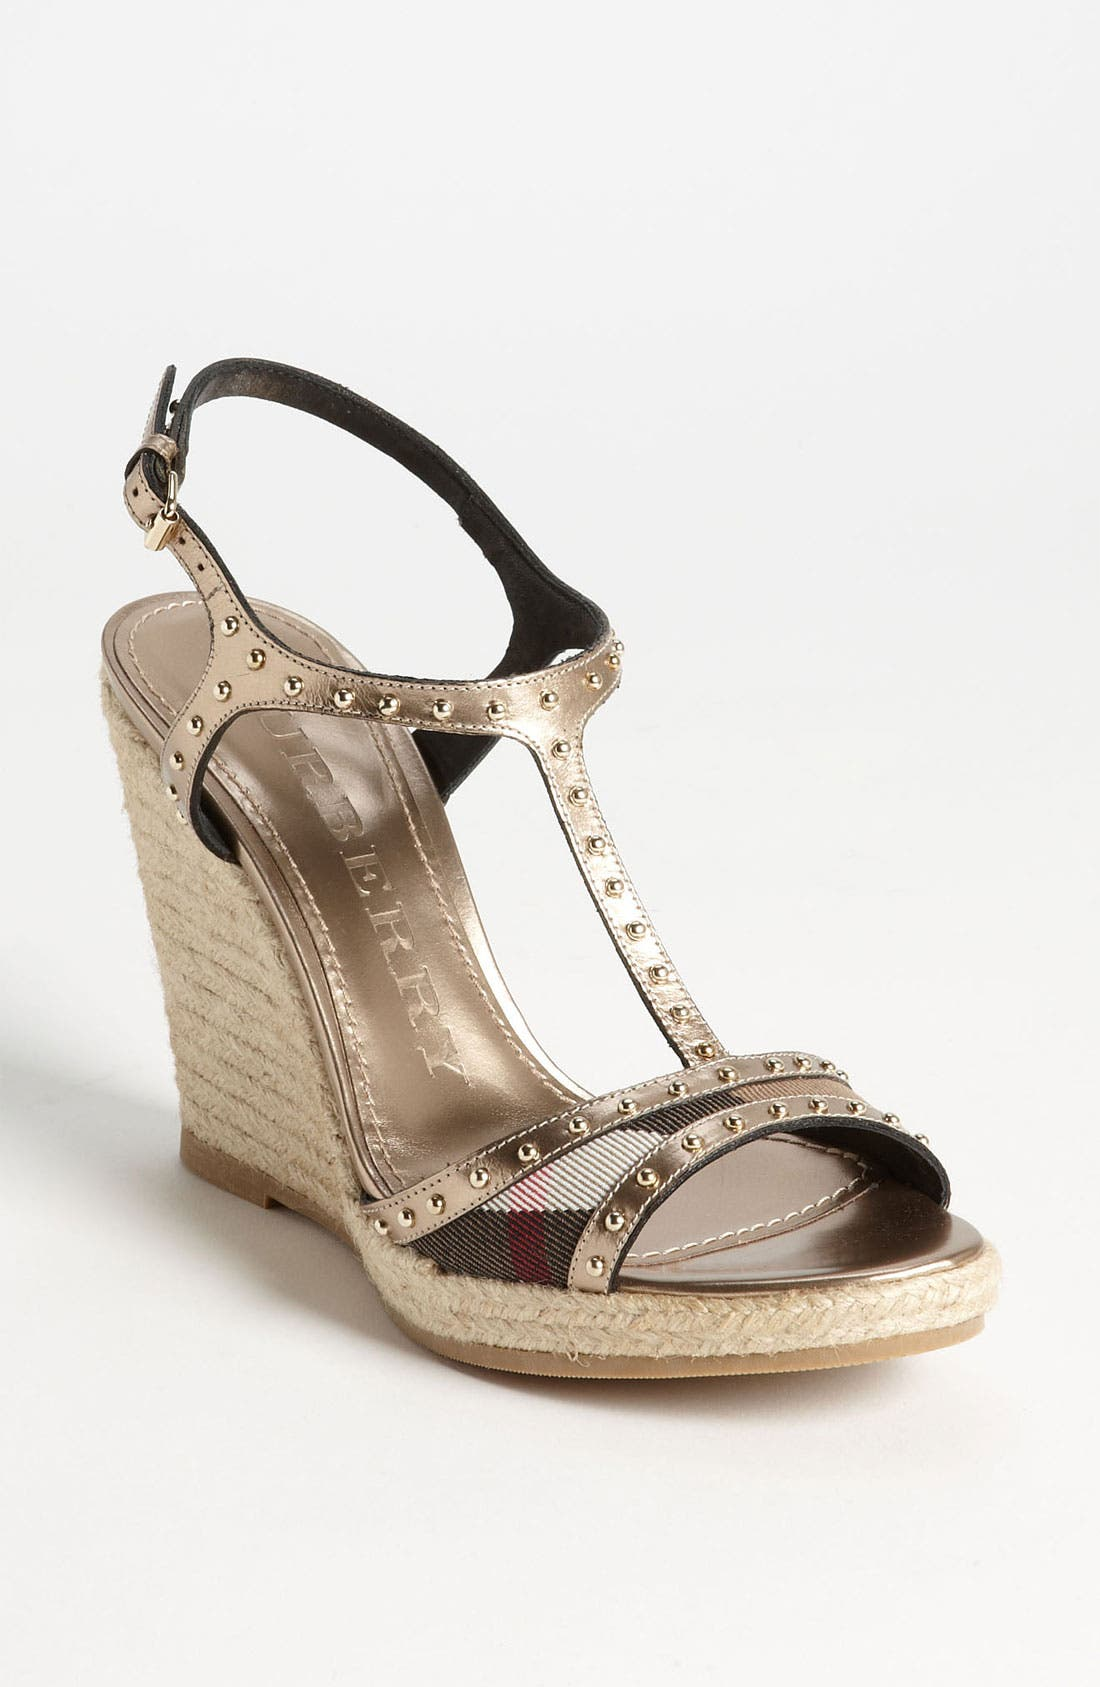 Alternate Image 1 Selected - Burberry 'Laleham' Wedge